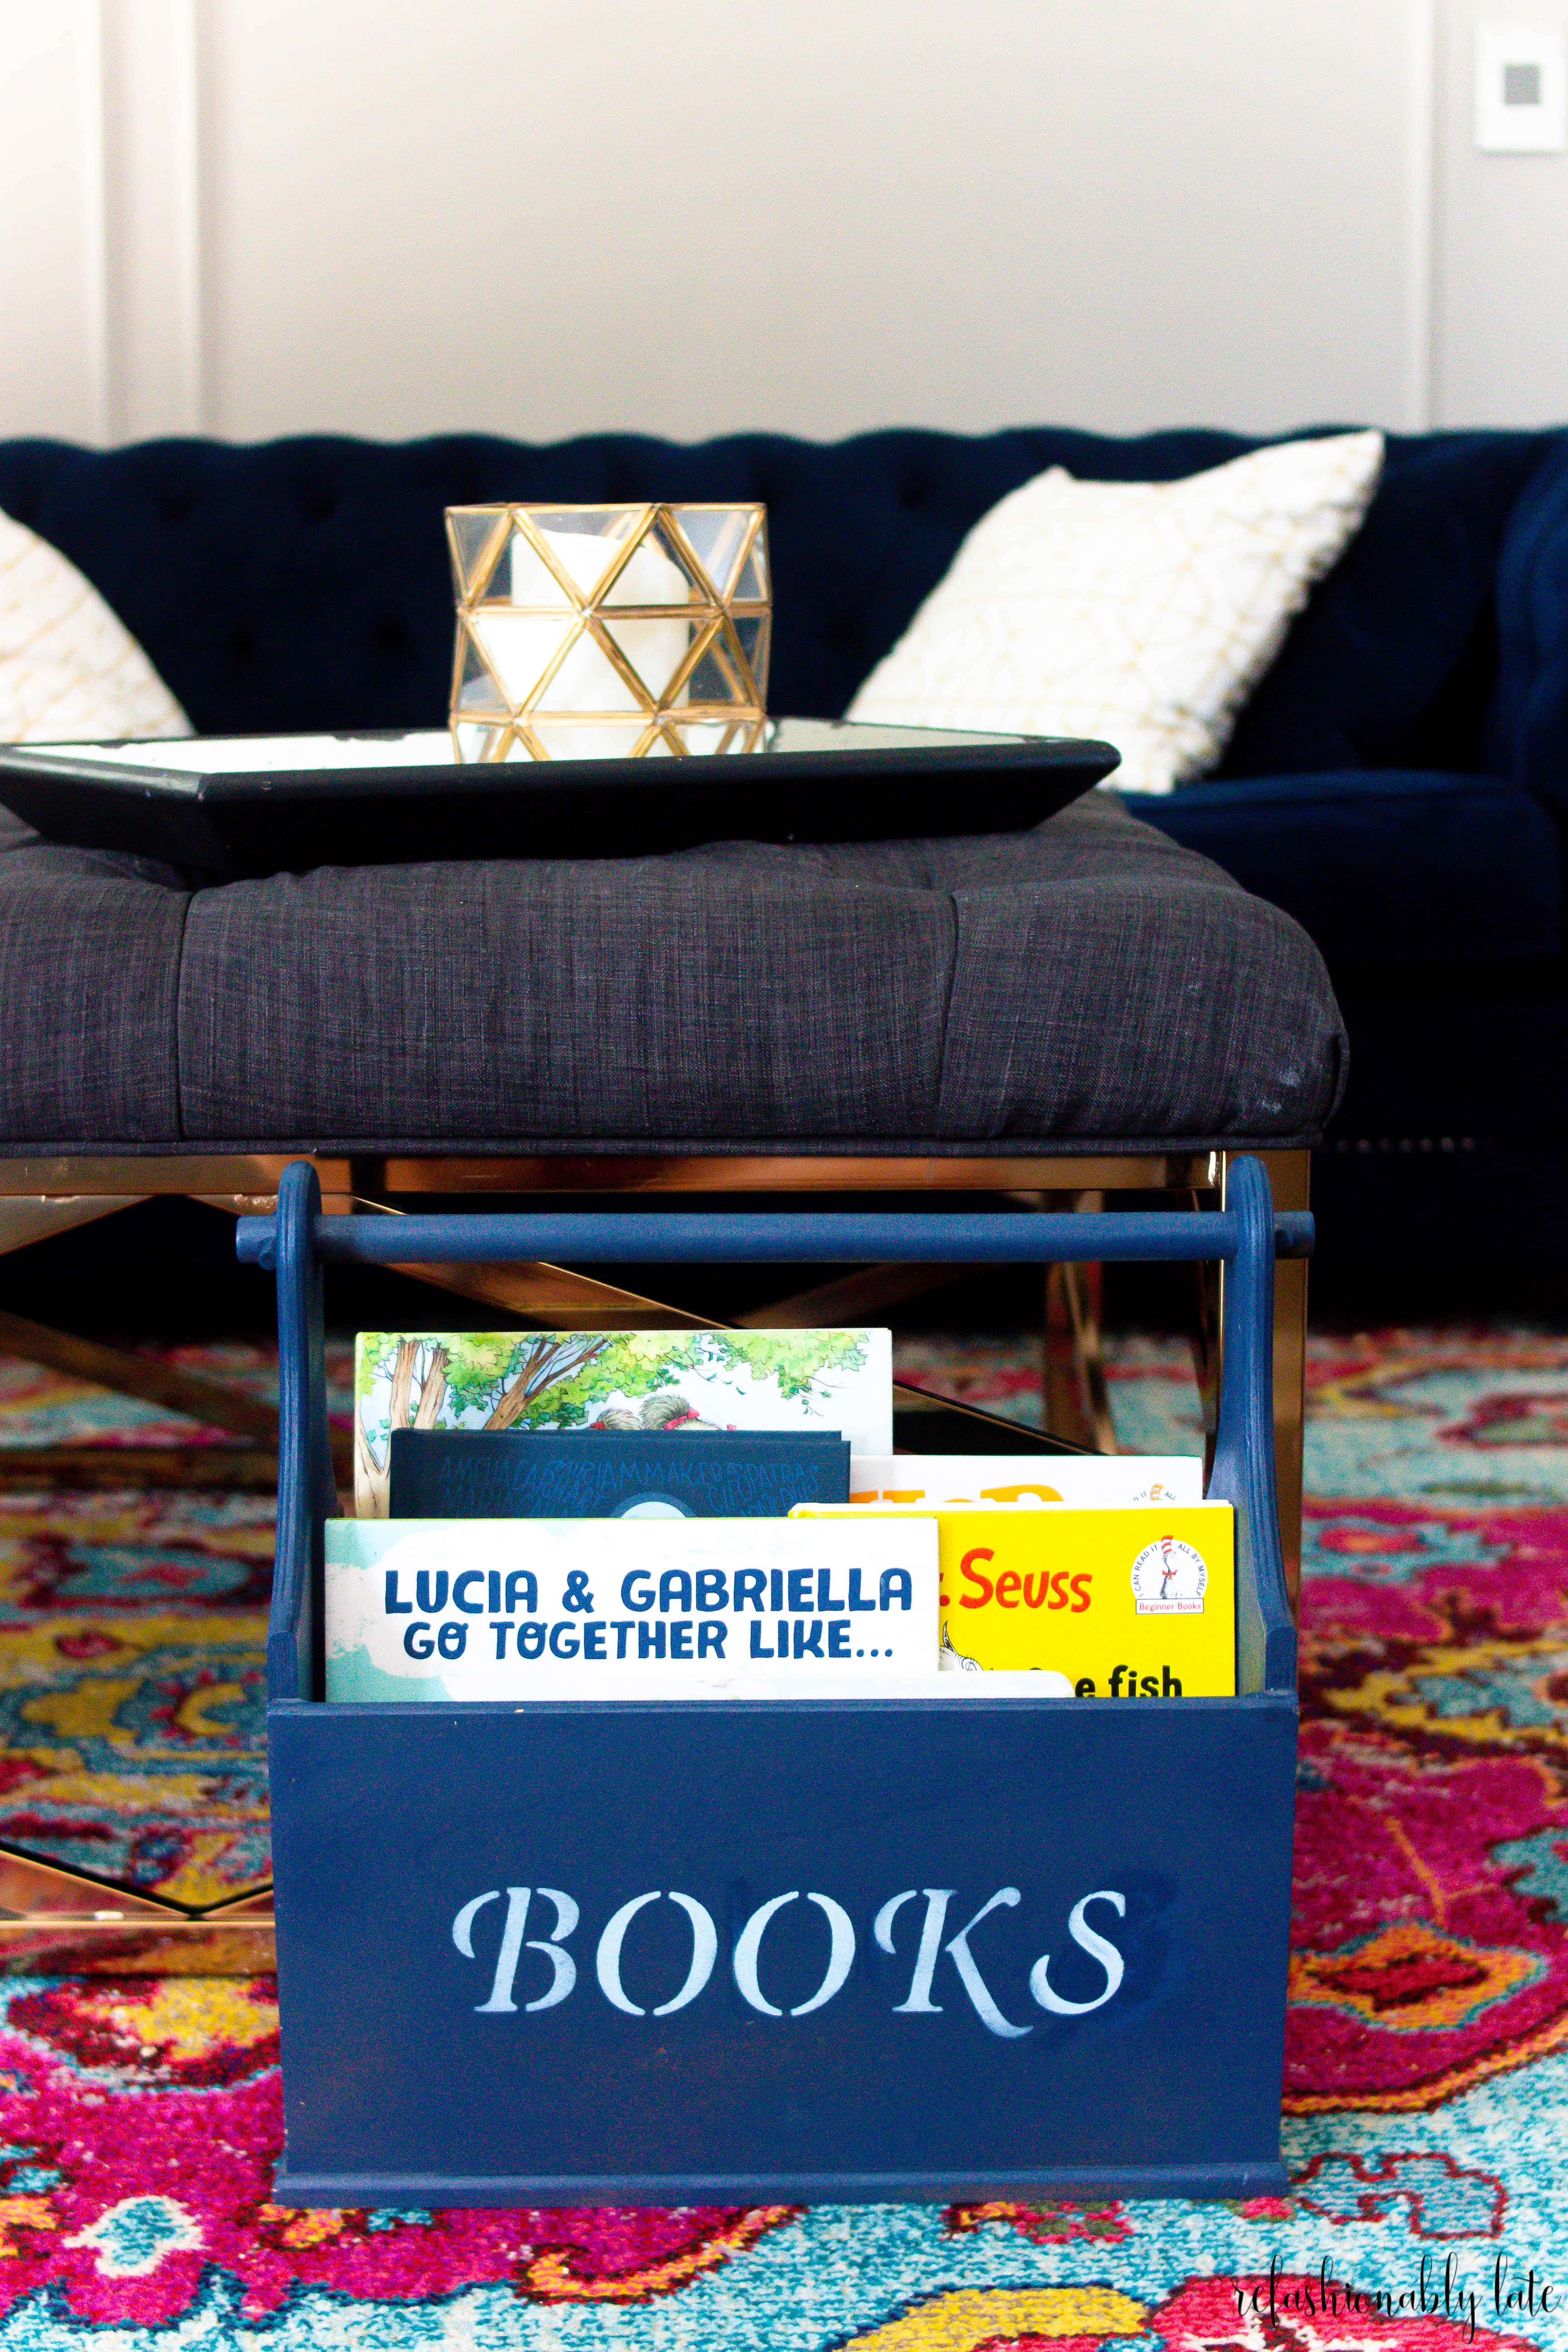 blue book storage with children's books inside on top of colorful rug